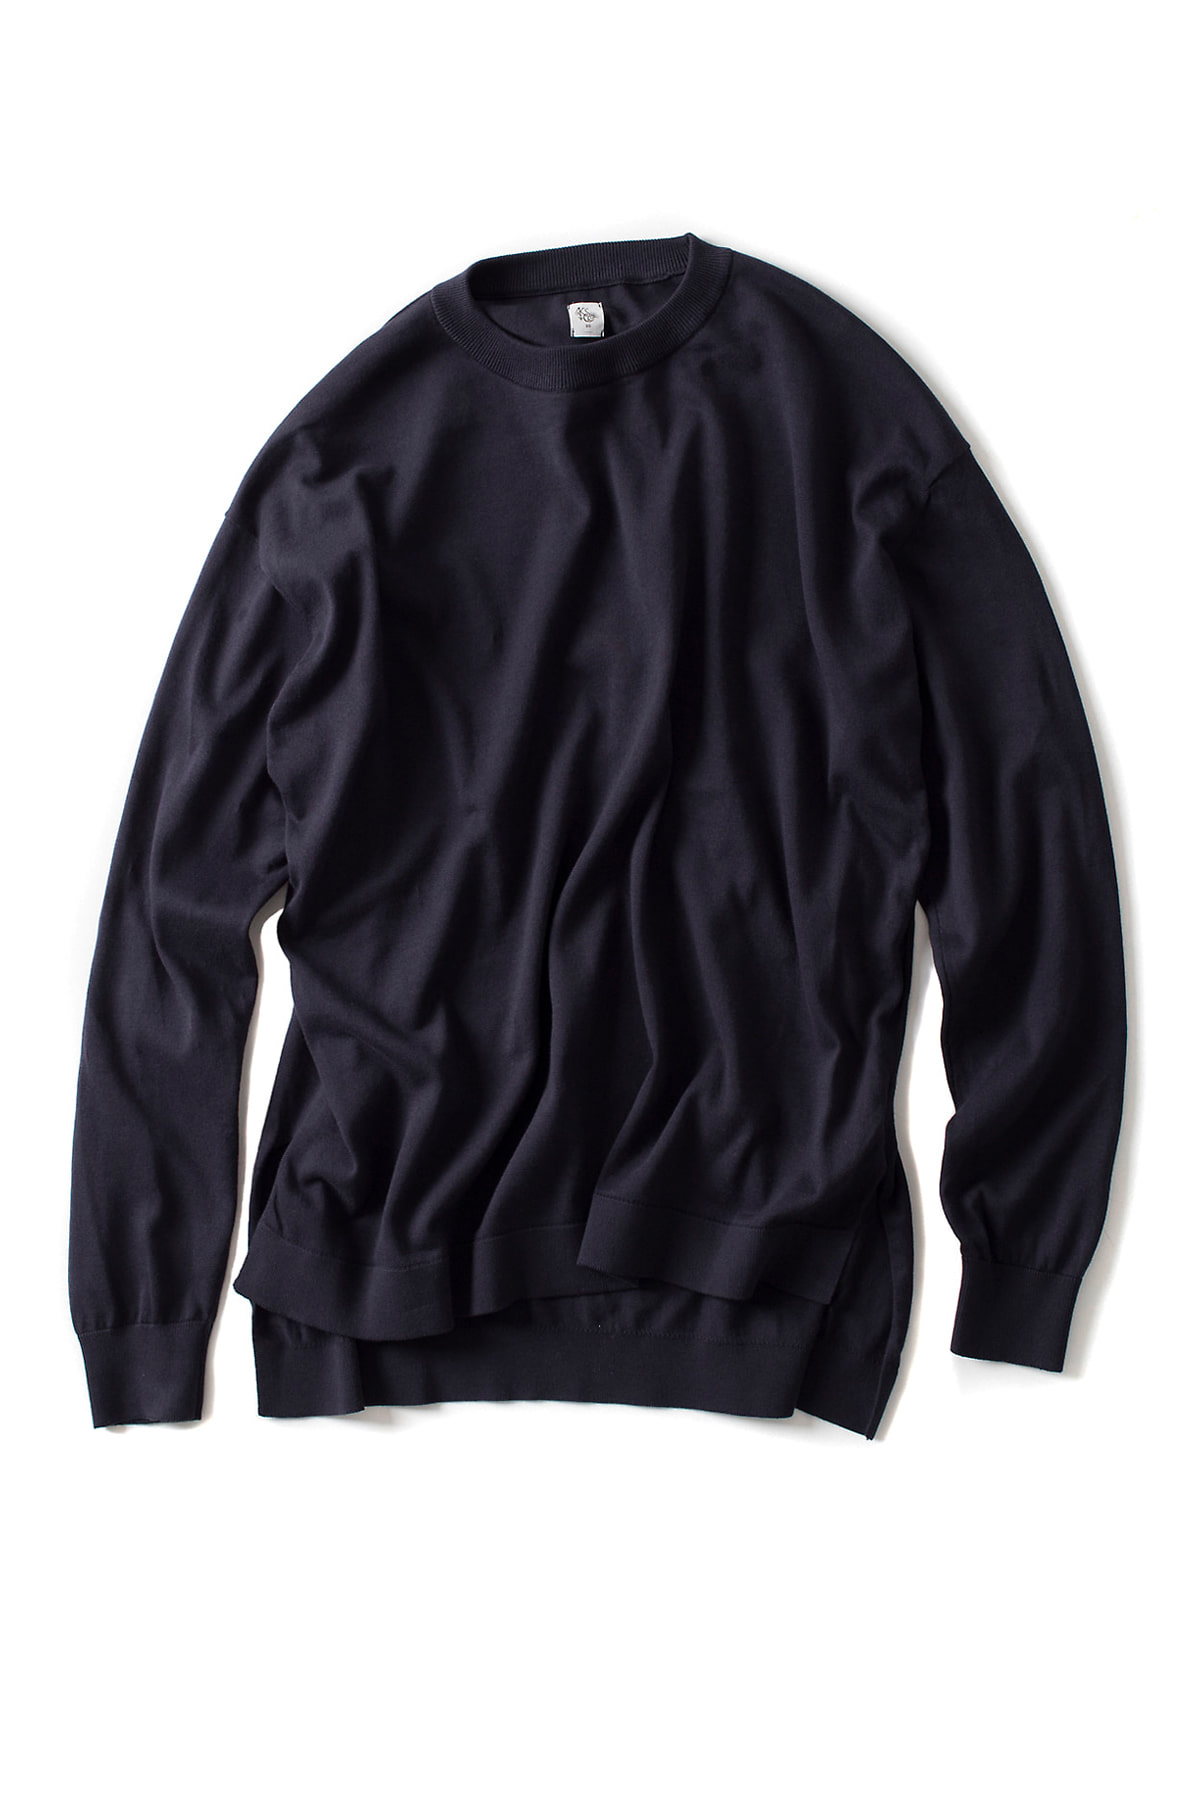 Kaptain Sunshine : Crewneck Long Sleeved Pullover knit (Navy)